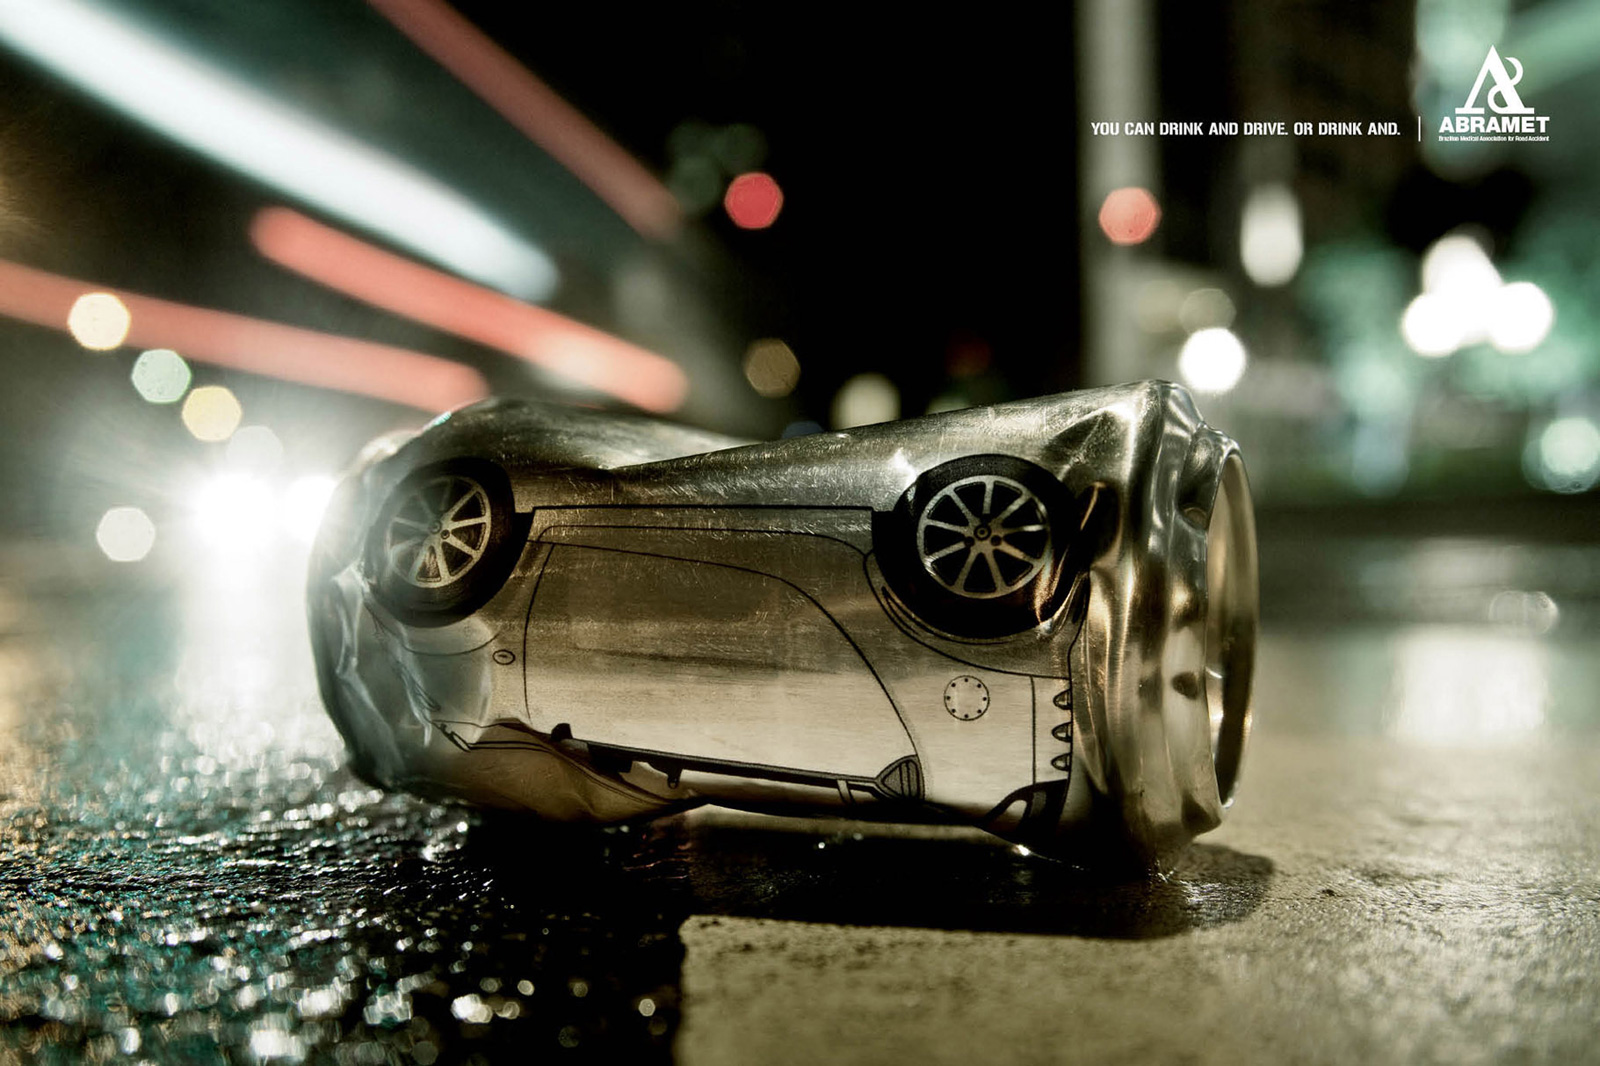 abramet print advert by drinking and driving ads of the world  abramet print ad drinking and driving